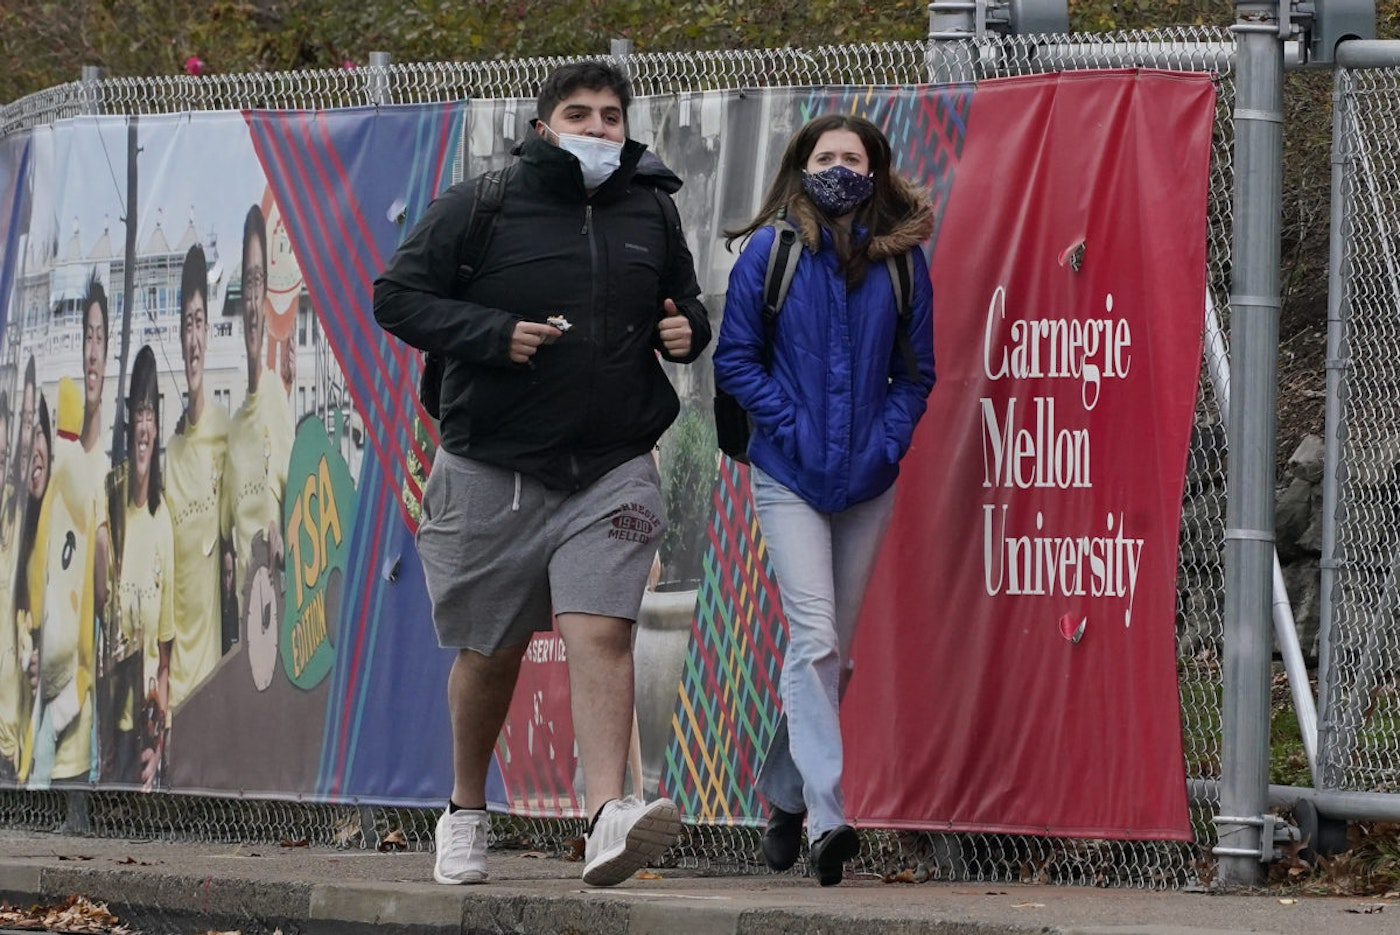 A man and a woman wearing masks walk near the campus of Carnegie Mellon University, in the Oakland neighborhood of Pittsburgh on Tuesday, Nov. 17, 2020. Pennsylvania is strengthening its mask mandate and will require out-of-state travelers to test negative for the coronavirus before arrival. The state health secretary, Dr. Rachel Levine, said the new measures are in response to a sharp increase in infections and hospitalizations. She said Tuesday that masks are now required indoors wherever people from different households are gathered—even if they are physically distant. Like the rest of the nation, Pennsylvania has seen coronavirus infections explode in recent weeks.(AP Photo/Gene J. Puskar)